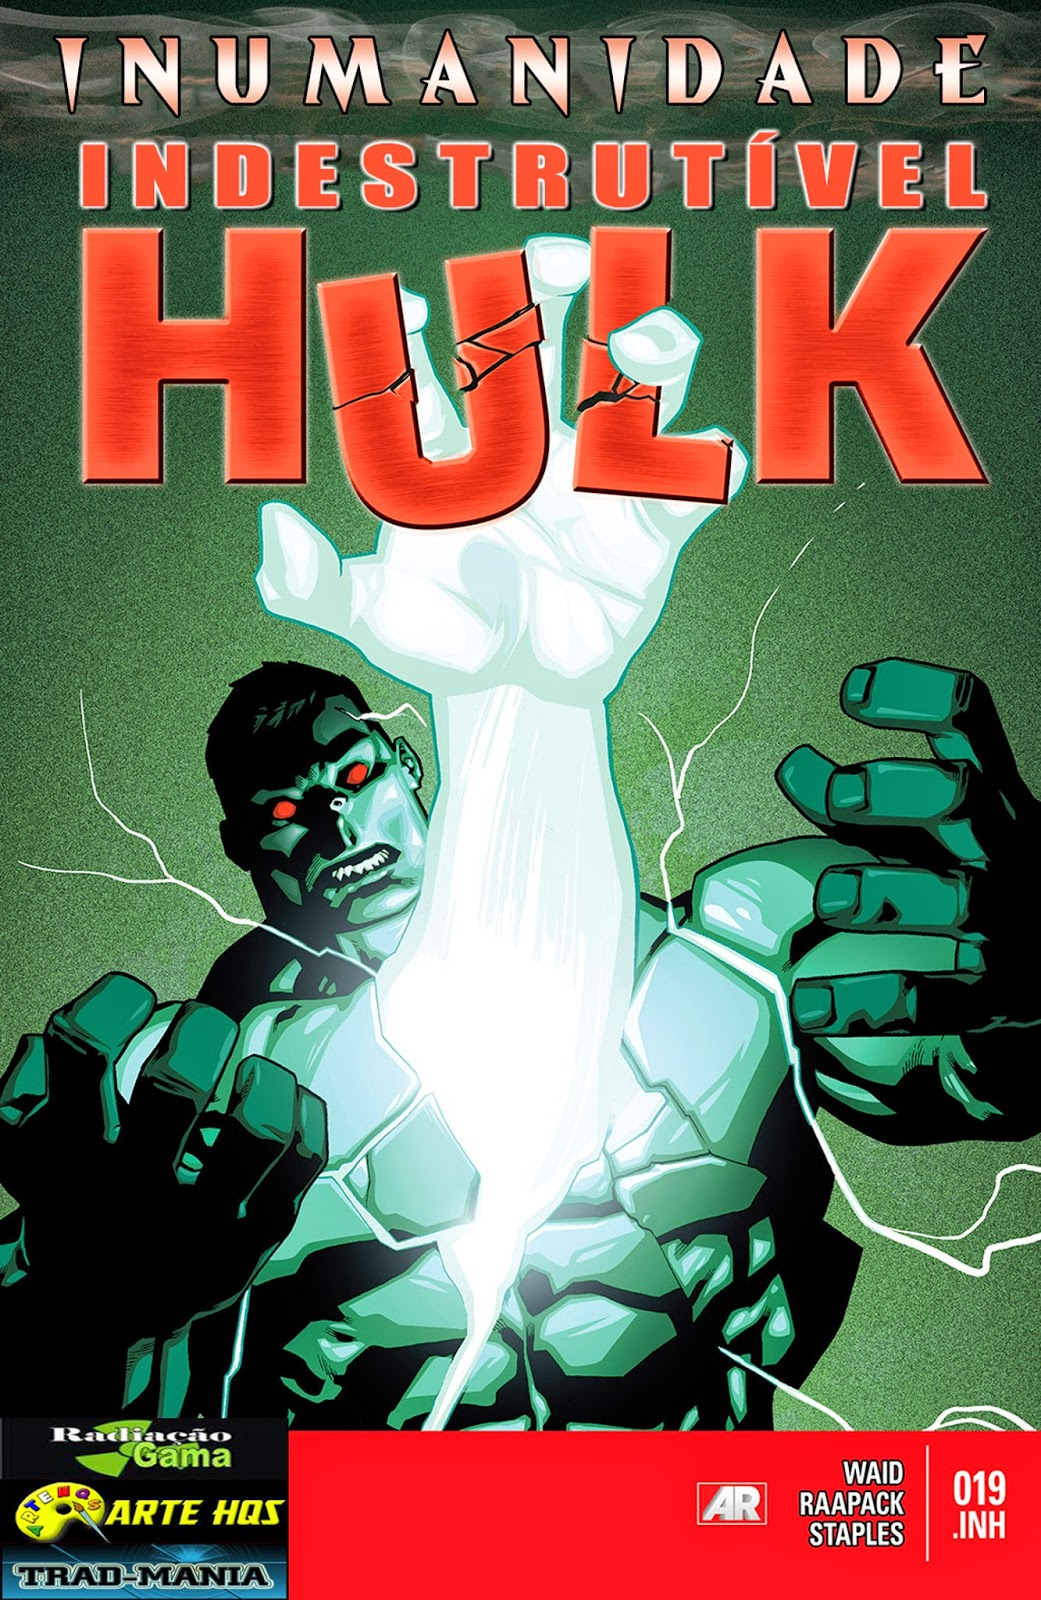 Nova Marvel! O Indestrutível Hulk #19